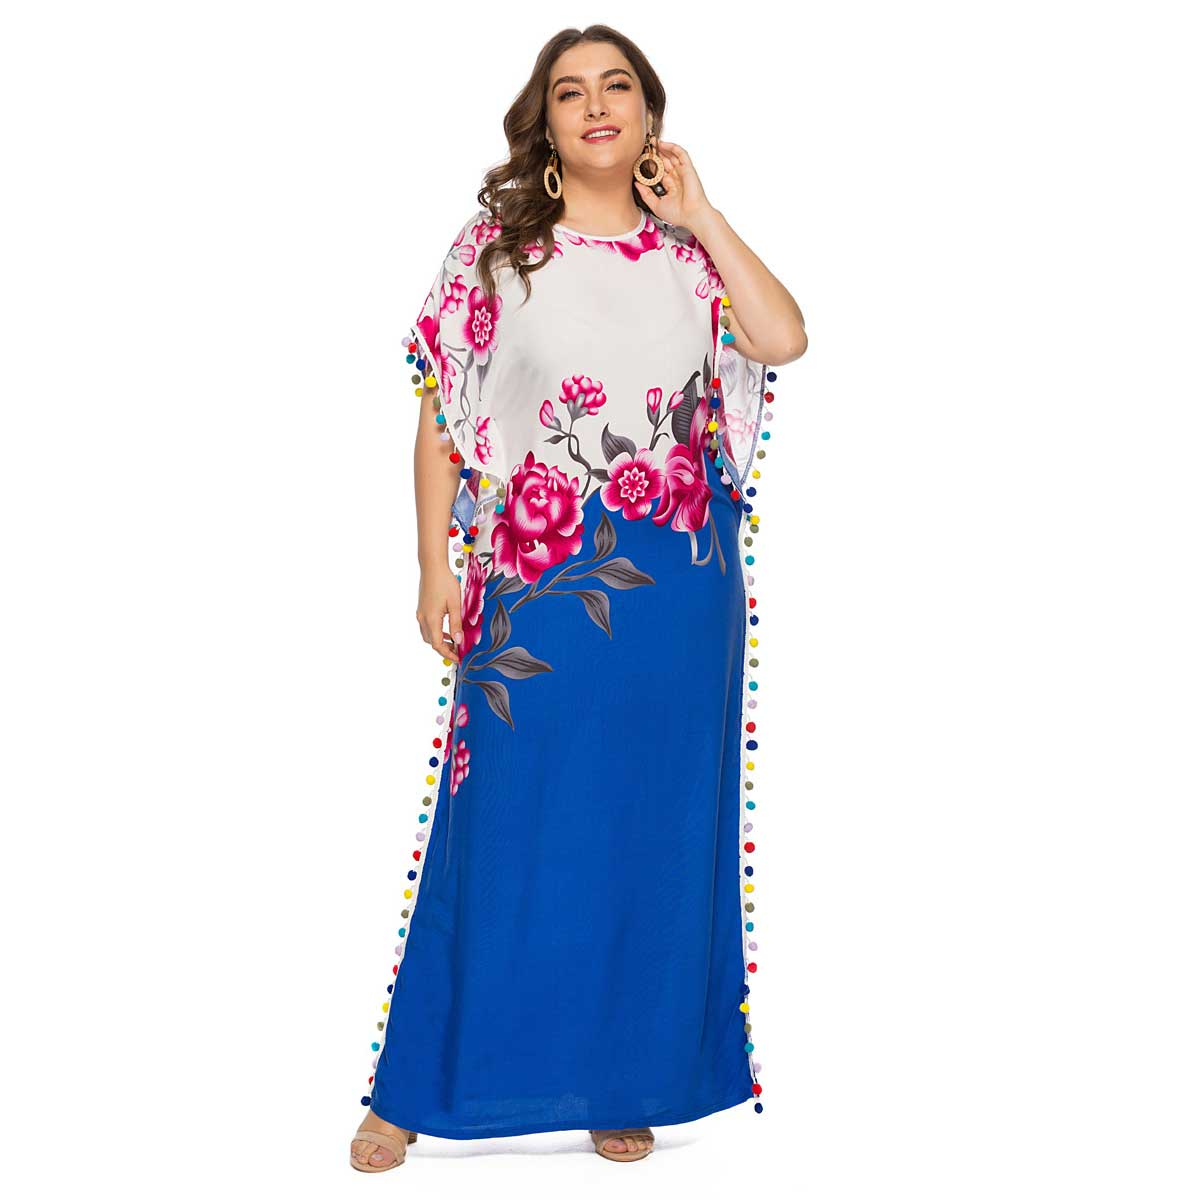 Summer Floral Printed Maxi Dress Oversized Bat Sleeve O neck Pompom Muslim Abaya Dubai Arabic Ramadan Robe Plus Size VKDR1530-in Islamic Clothing from Novelty & Special Use on Aliexpress.com | Alibaba Group